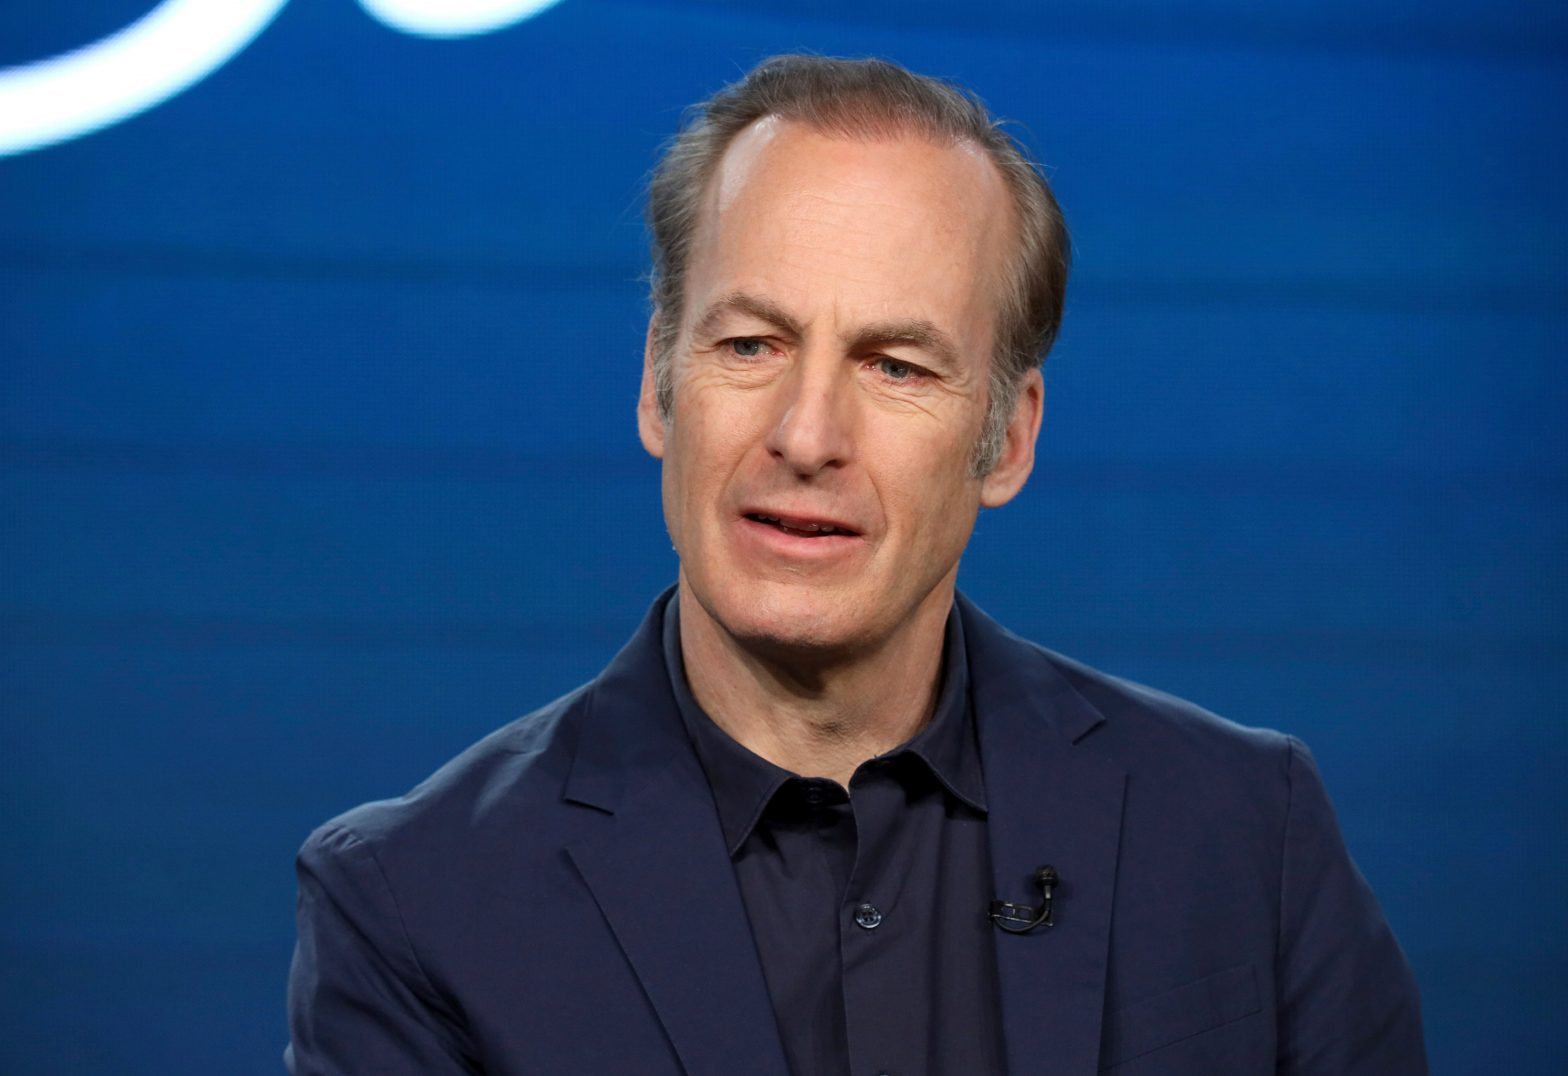 prayers-for-bob-odenkirk-from-fans-and-celebrities-following-collapse-on-set-and-no-updates-on-his-…